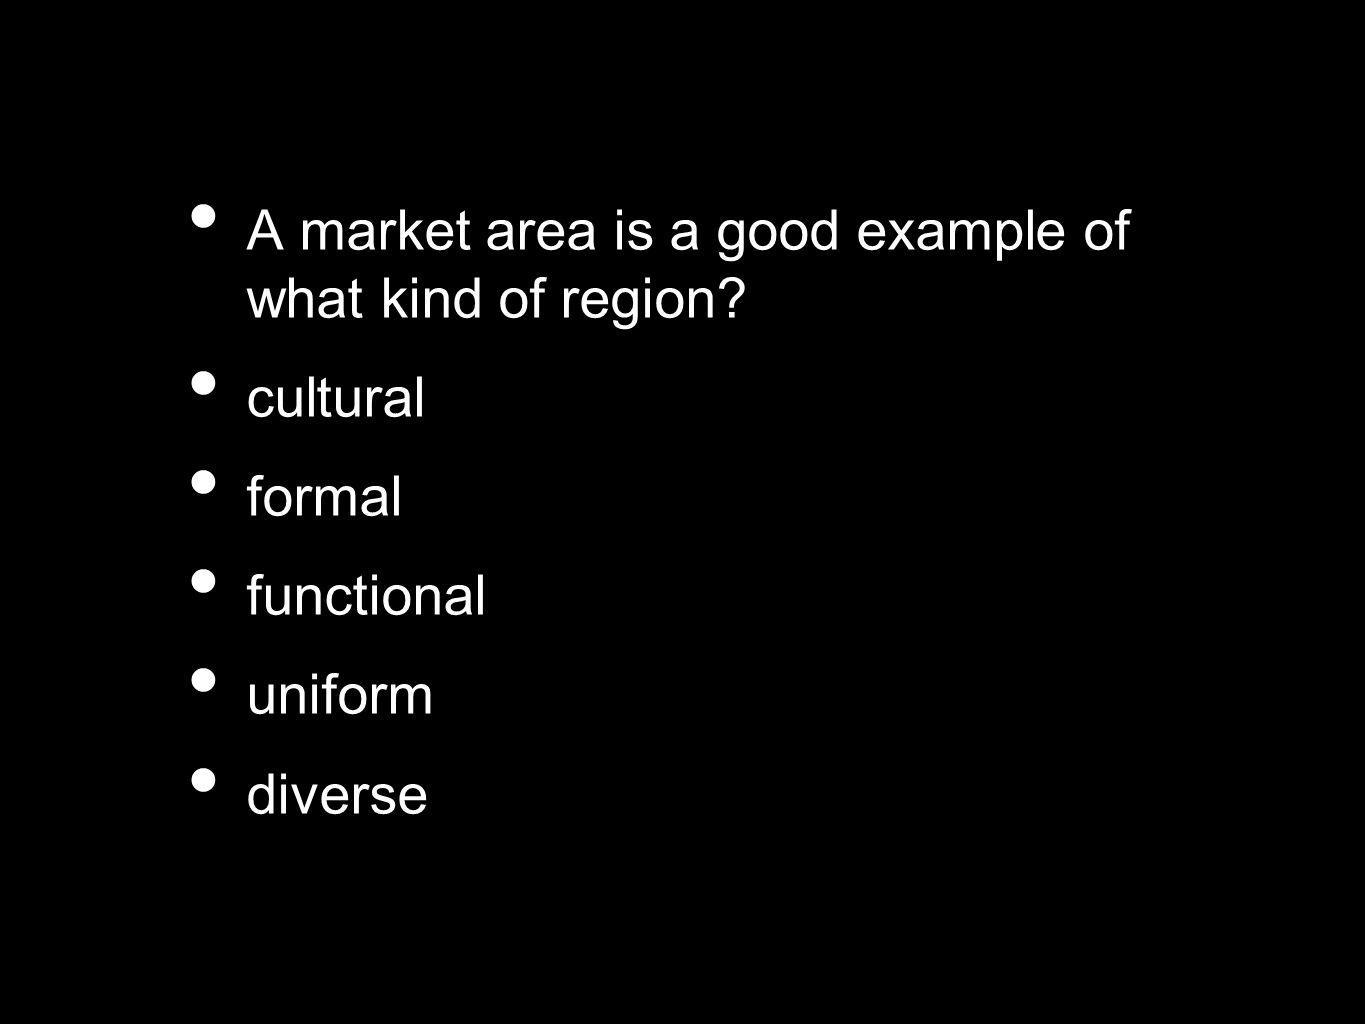 A market area is a good example of what kind of region